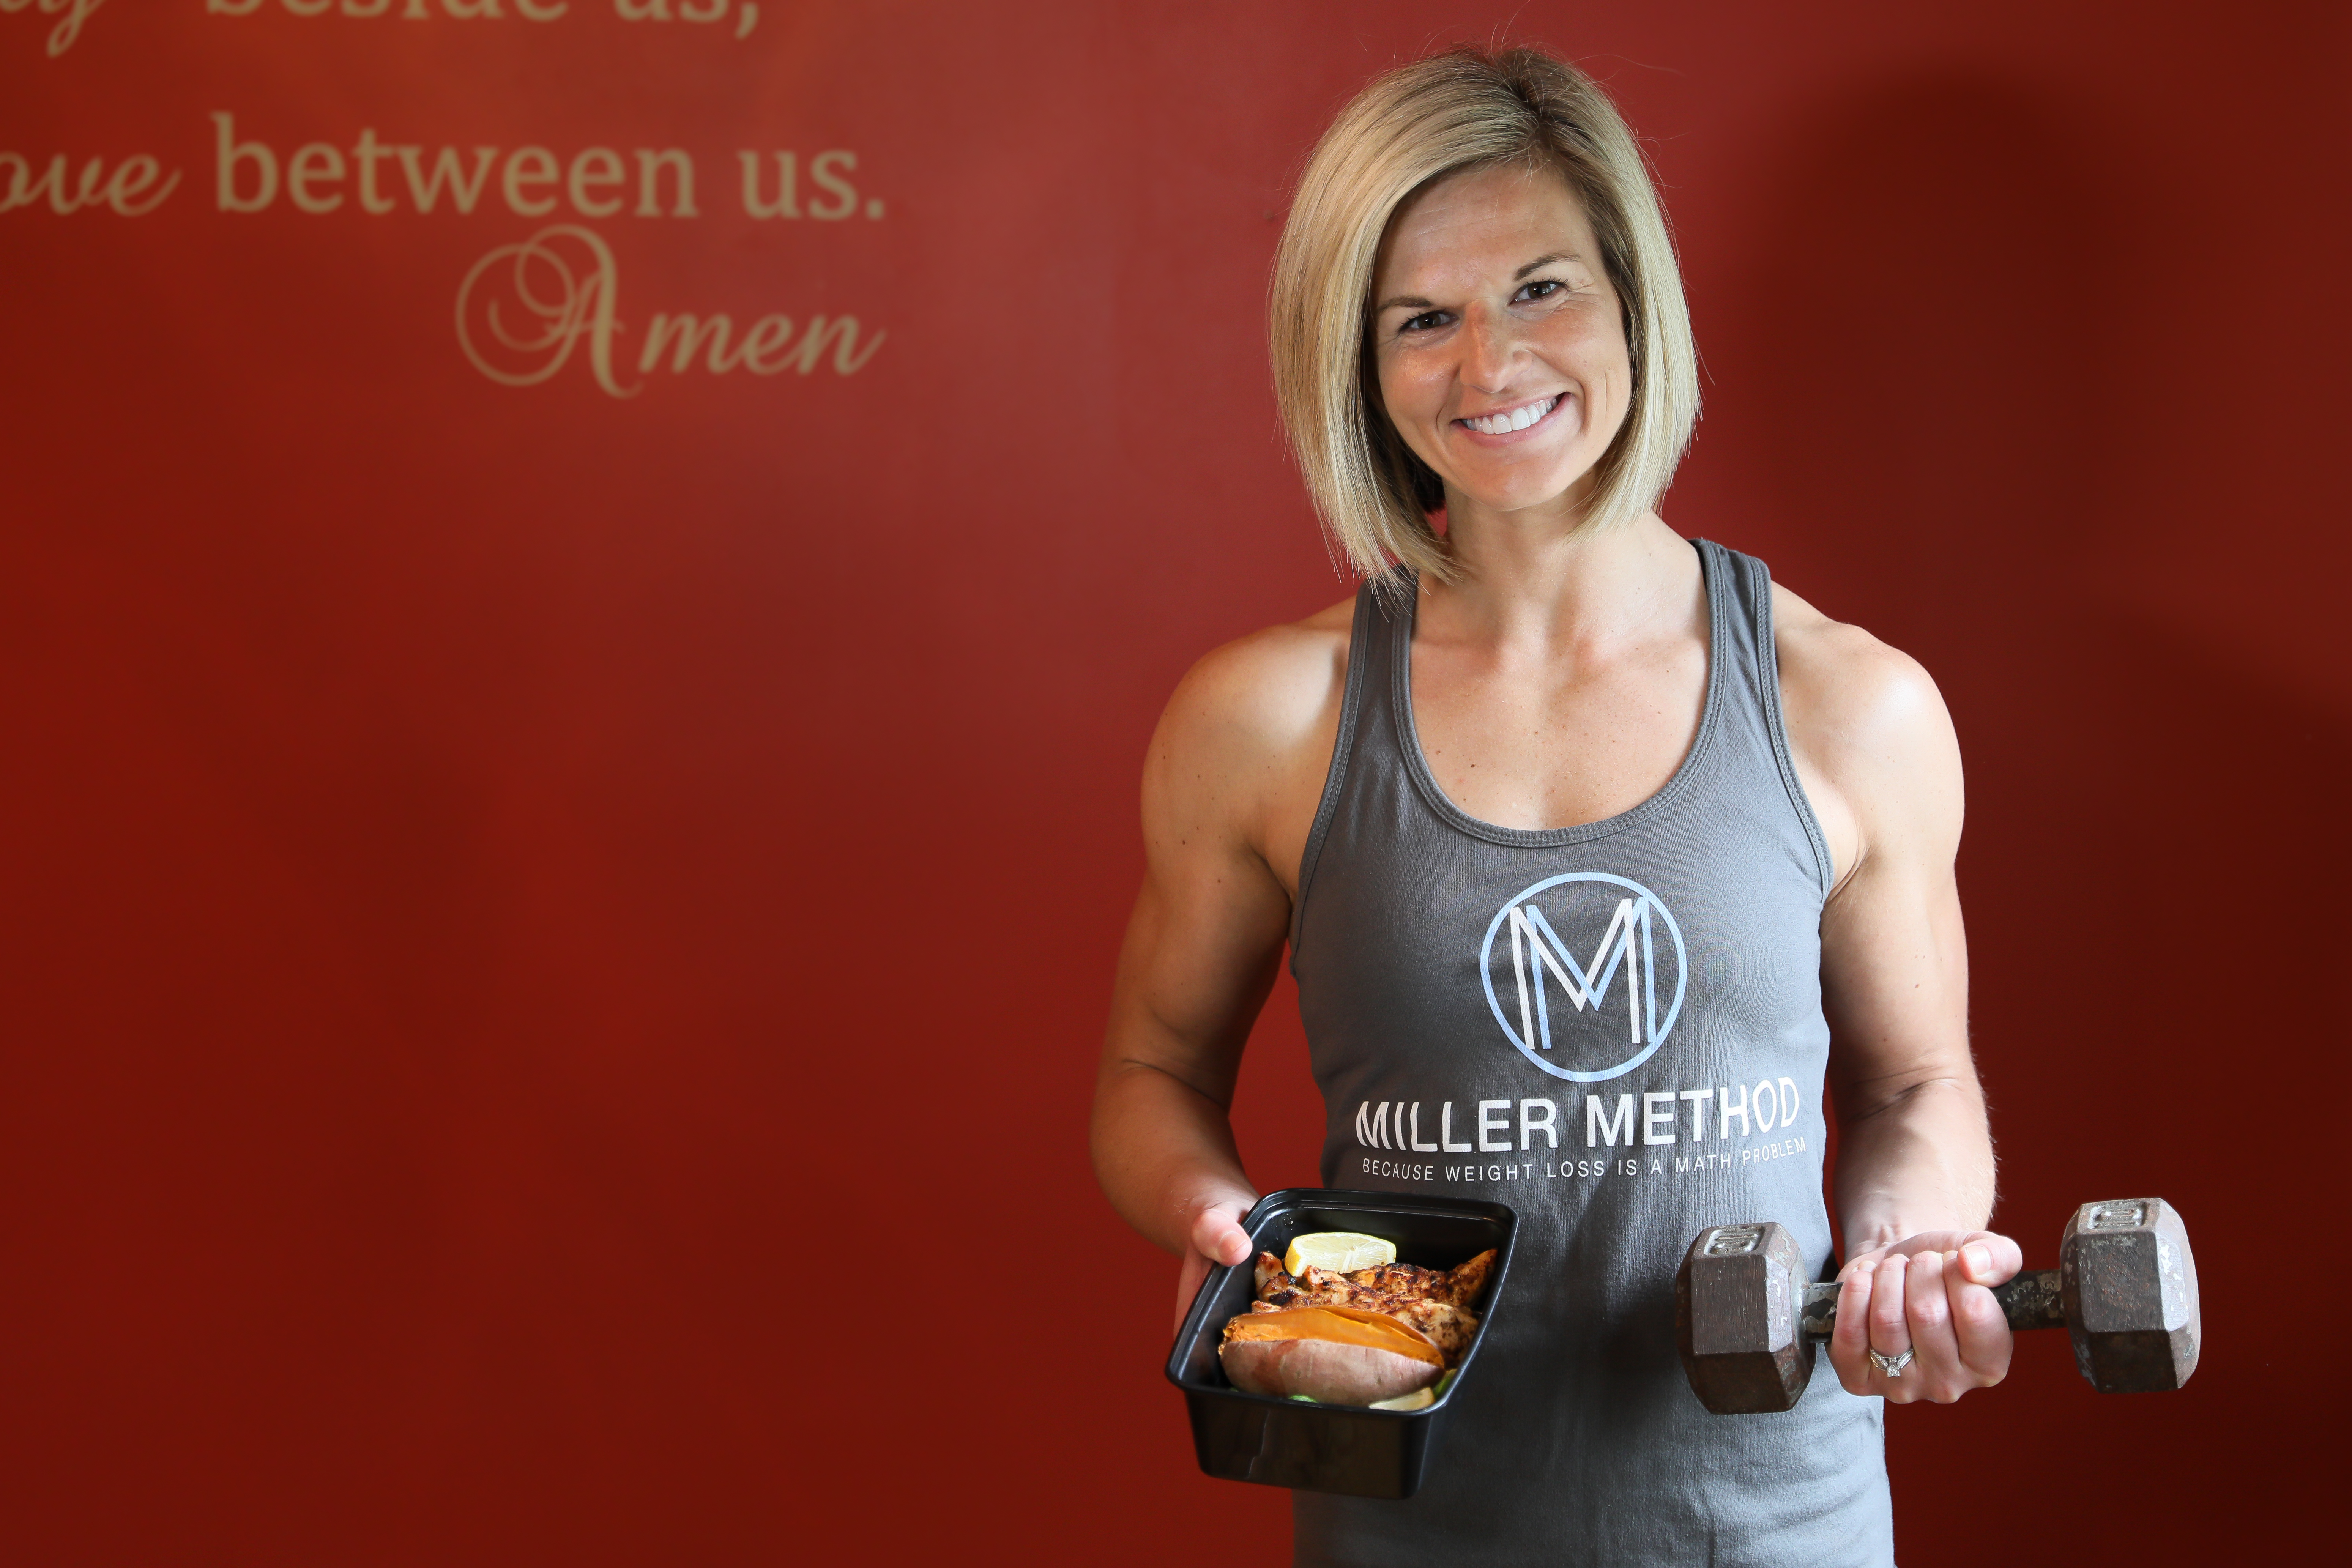 "Julie poses in front of a red wall holding a container of food in one hand and a small dumbbell in the other. She is smiling and wearing a gray tank top that reads ""Miller Method"""